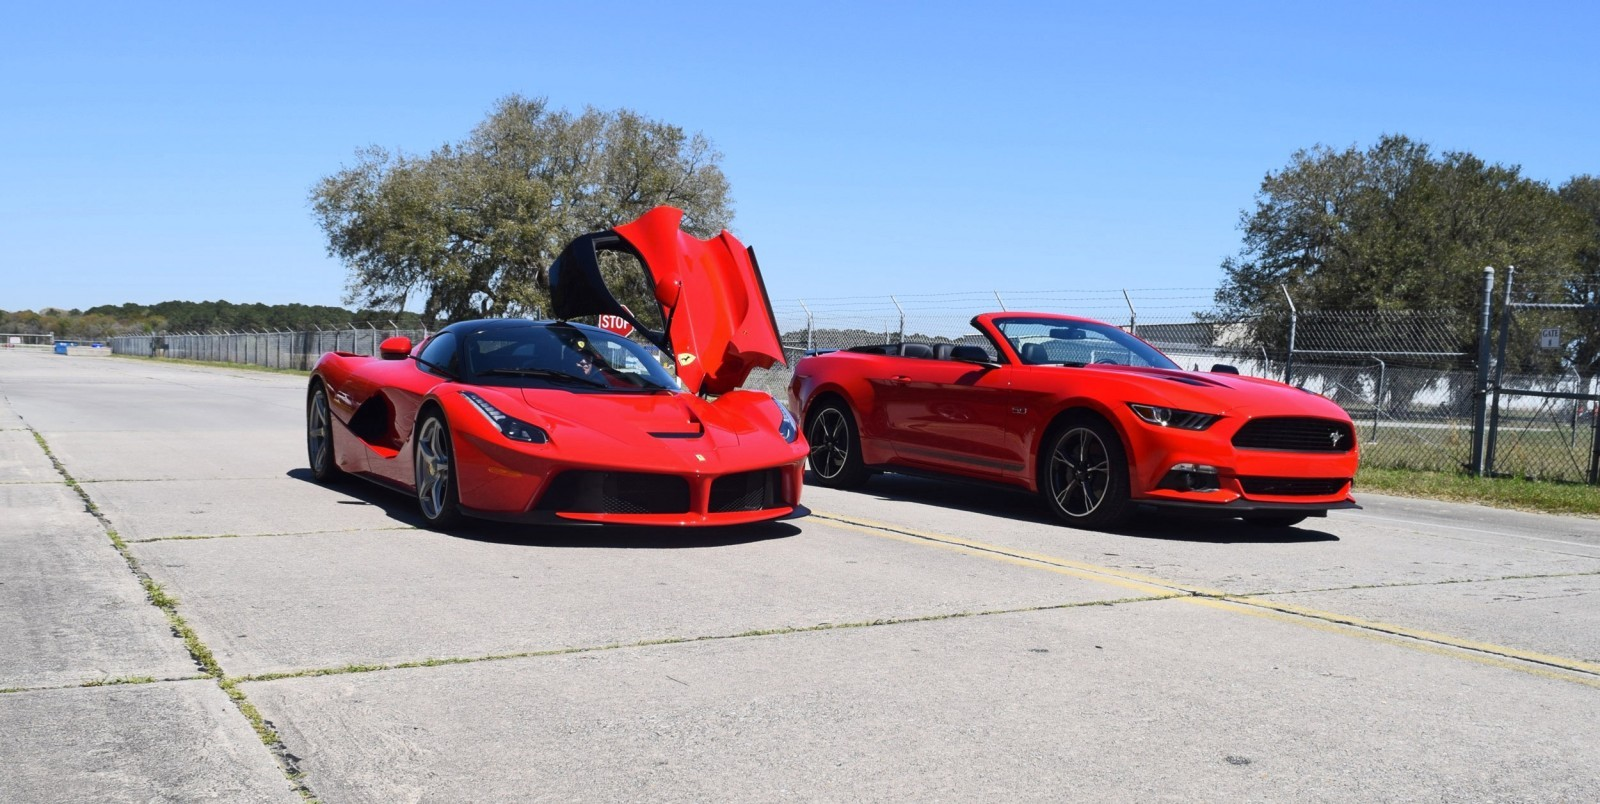 Speed Fleet! 2016 Ford Mustang GT Cali Special + LaFERRARI! Speed Fleet! 2016 Ford Mustang GT Cali Special + LaFERRARI! Speed Fleet! 2016 Ford Mustang GT Cali Special + LaFERRARI! Speed Fleet! 2016 Ford Mustang GT Cali Special + LaFERRARI! Speed Fleet! 2016 Ford Mustang GT Cali Special + LaFERRARI! Speed Fleet! 2016 Ford Mustang GT Cali Special + LaFERRARI! Speed Fleet! 2016 Ford Mustang GT Cali Special + LaFERRARI! Speed Fleet! 2016 Ford Mustang GT Cali Special + LaFERRARI! Speed Fleet! 2016 Ford Mustang GT Cali Special + LaFERRARI! Speed Fleet! 2016 Ford Mustang GT Cali Special + LaFERRARI! Speed Fleet! 2016 Ford Mustang GT Cali Special + LaFERRARI! Speed Fleet! 2016 Ford Mustang GT Cali Special + LaFERRARI! Speed Fleet! 2016 Ford Mustang GT Cali Special + LaFERRARI! Speed Fleet! 2016 Ford Mustang GT Cali Special + LaFERRARI! Speed Fleet! 2016 Ford Mustang GT Cali Special + LaFERRARI! Speed Fleet! 2016 Ford Mustang GT Cali Special + LaFERRARI! Speed Fleet! 2016 Ford Mustang GT Cali Special + LaFERRARI! Speed Fleet! 2016 Ford Mustang GT Cali Special + LaFERRARI! Speed Fleet! 2016 Ford Mustang GT Cali Special + LaFERRARI! Speed Fleet! 2016 Ford Mustang GT Cali Special + LaFERRARI! Speed Fleet! 2016 Ford Mustang GT Cali Special + LaFERRARI! Speed Fleet! 2016 Ford Mustang GT Cali Special + LaFERRARI! Speed Fleet! 2016 Ford Mustang GT Cali Special + LaFERRARI! Speed Fleet! 2016 Ford Mustang GT Cali Special + LaFERRARI! Speed Fleet! 2016 Ford Mustang GT Cali Special + LaFERRARI! Speed Fleet! 2016 Ford Mustang GT Cali Special + LaFERRARI! Speed Fleet! 2016 Ford Mustang GT Cali Special + LaFERRARI! Speed Fleet! 2016 Ford Mustang GT Cali Special + LaFERRARI! Speed Fleet! 2016 Ford Mustang GT Cali Special + LaFERRARI! Speed Fleet! 2016 Ford Mustang GT Cali Special + LaFERRARI! Speed Fleet! 2016 Ford Mustang GT Cali Special + LaFERRARI! Speed Fleet! 2016 Ford Mustang GT Cali Special + LaFERRARI! Speed Fleet! 2016 Ford Mustang GT Cali Special + LaFERRARI! Speed Fleet! 2016 Ford Mustang GT Cali Special + LaFERRARI!